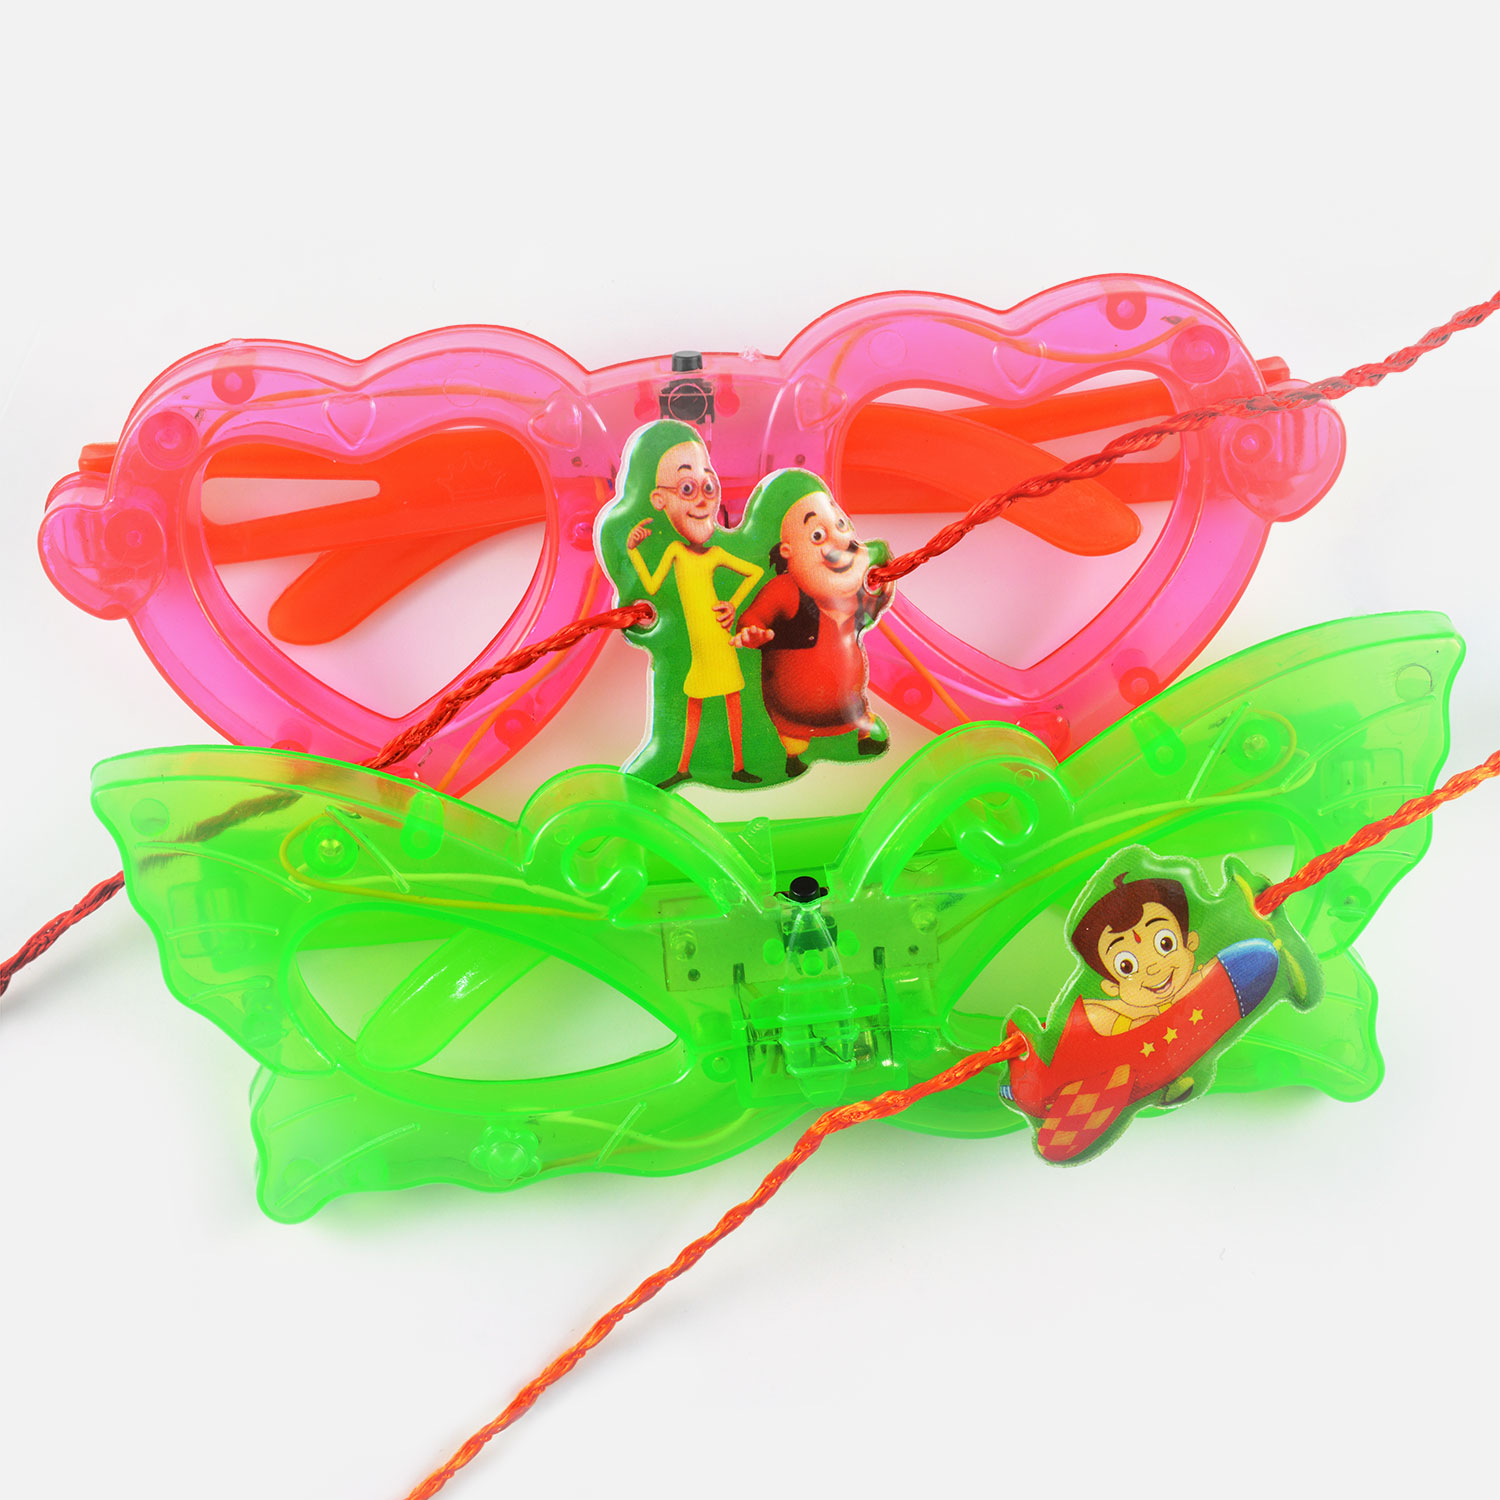 Motu Patlu and Pilot Chhota Bheem Rakhi Set of 2 for Kids